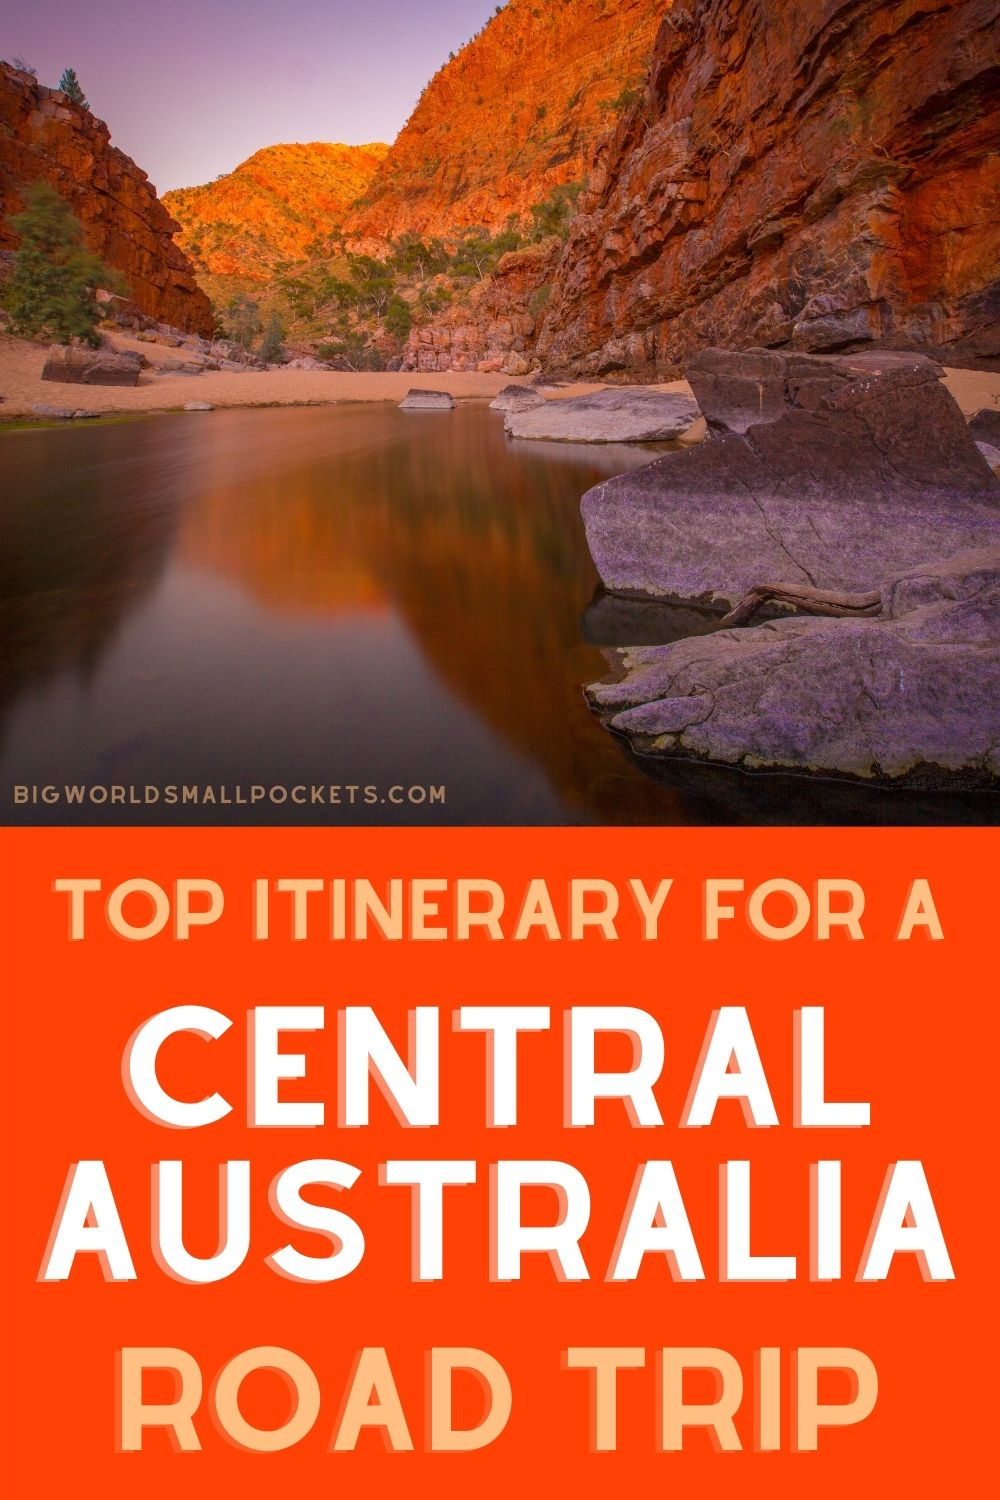 Top Itinerary For a Road Trip Through Central Australia